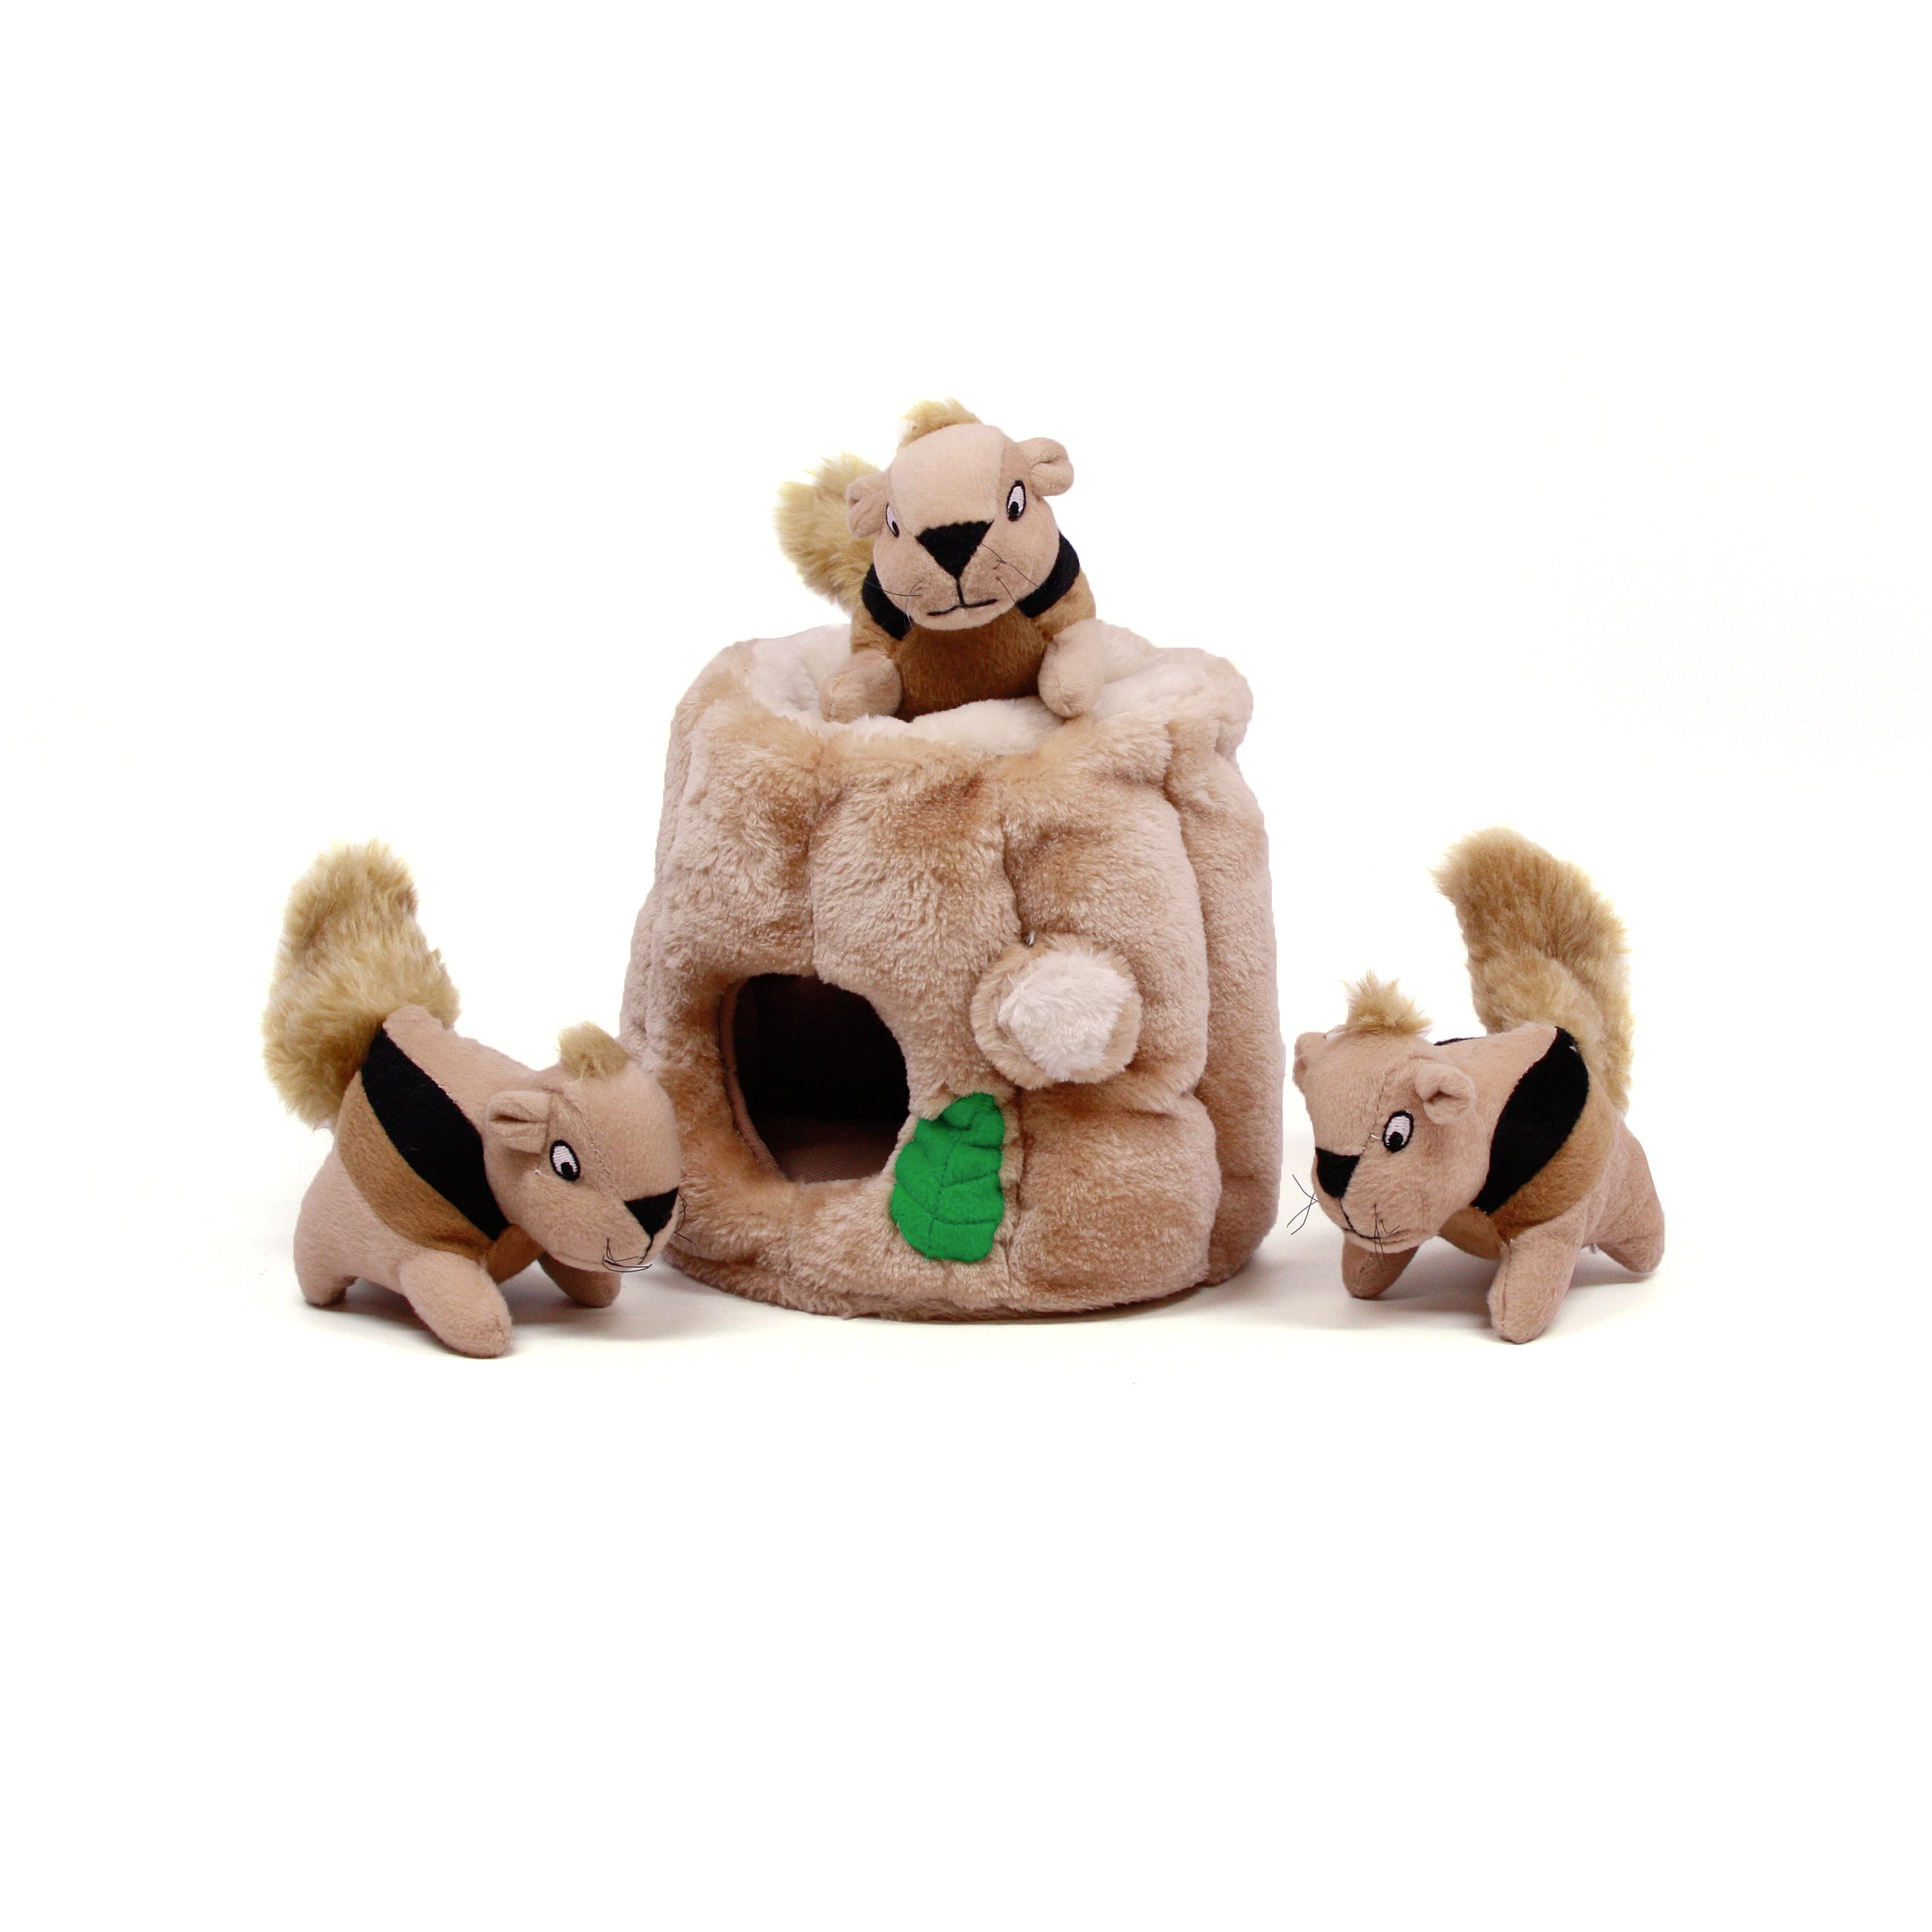 Outward Hound Hide-A-Squirrel and Puzzle Plush Squeaking Toys for Dogs Squirrel